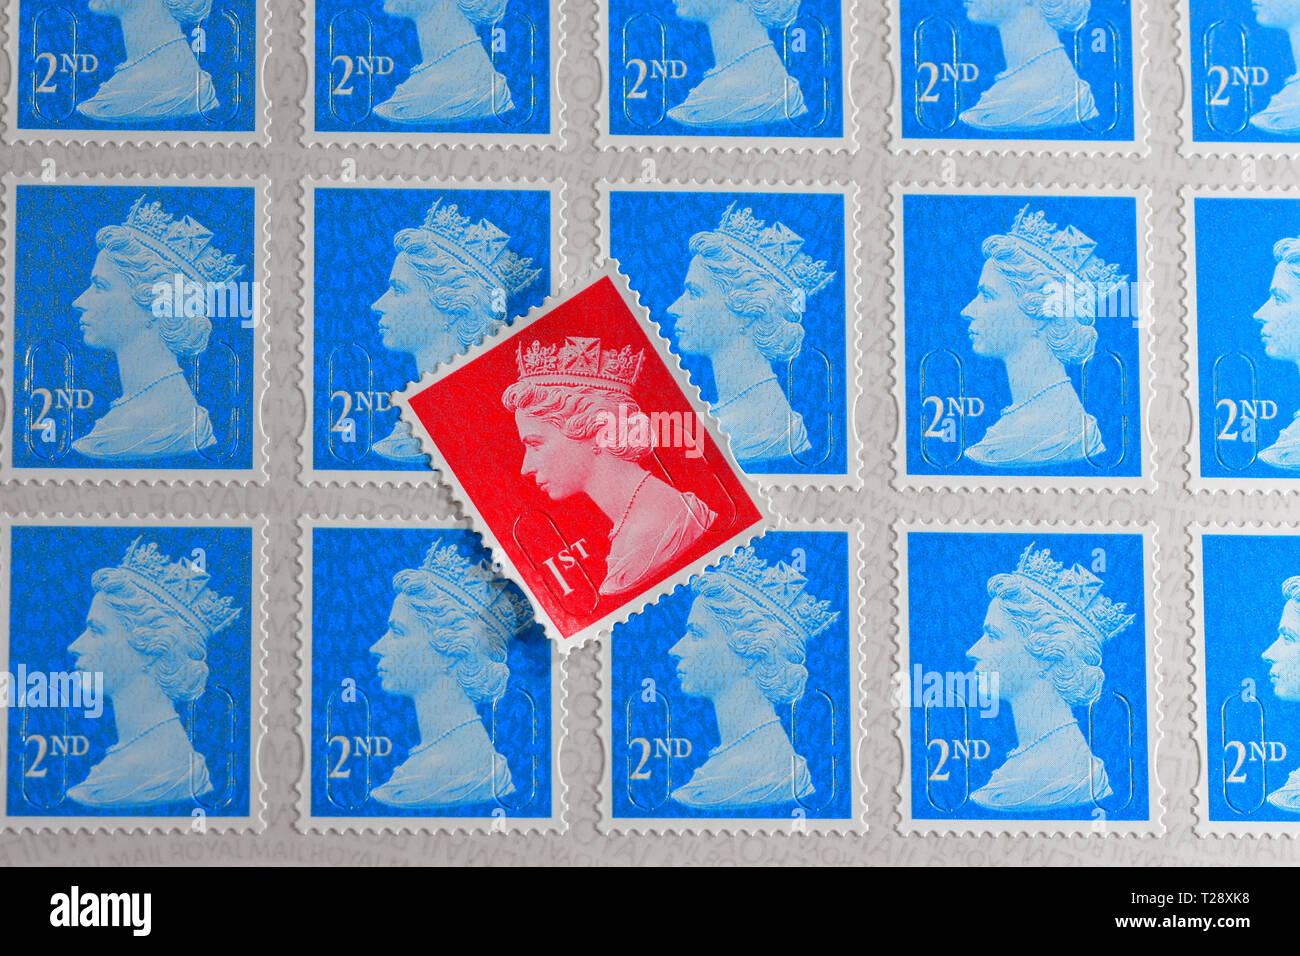 One red British 1st Class Stamp with blue 2nd class stamps Stock Photo